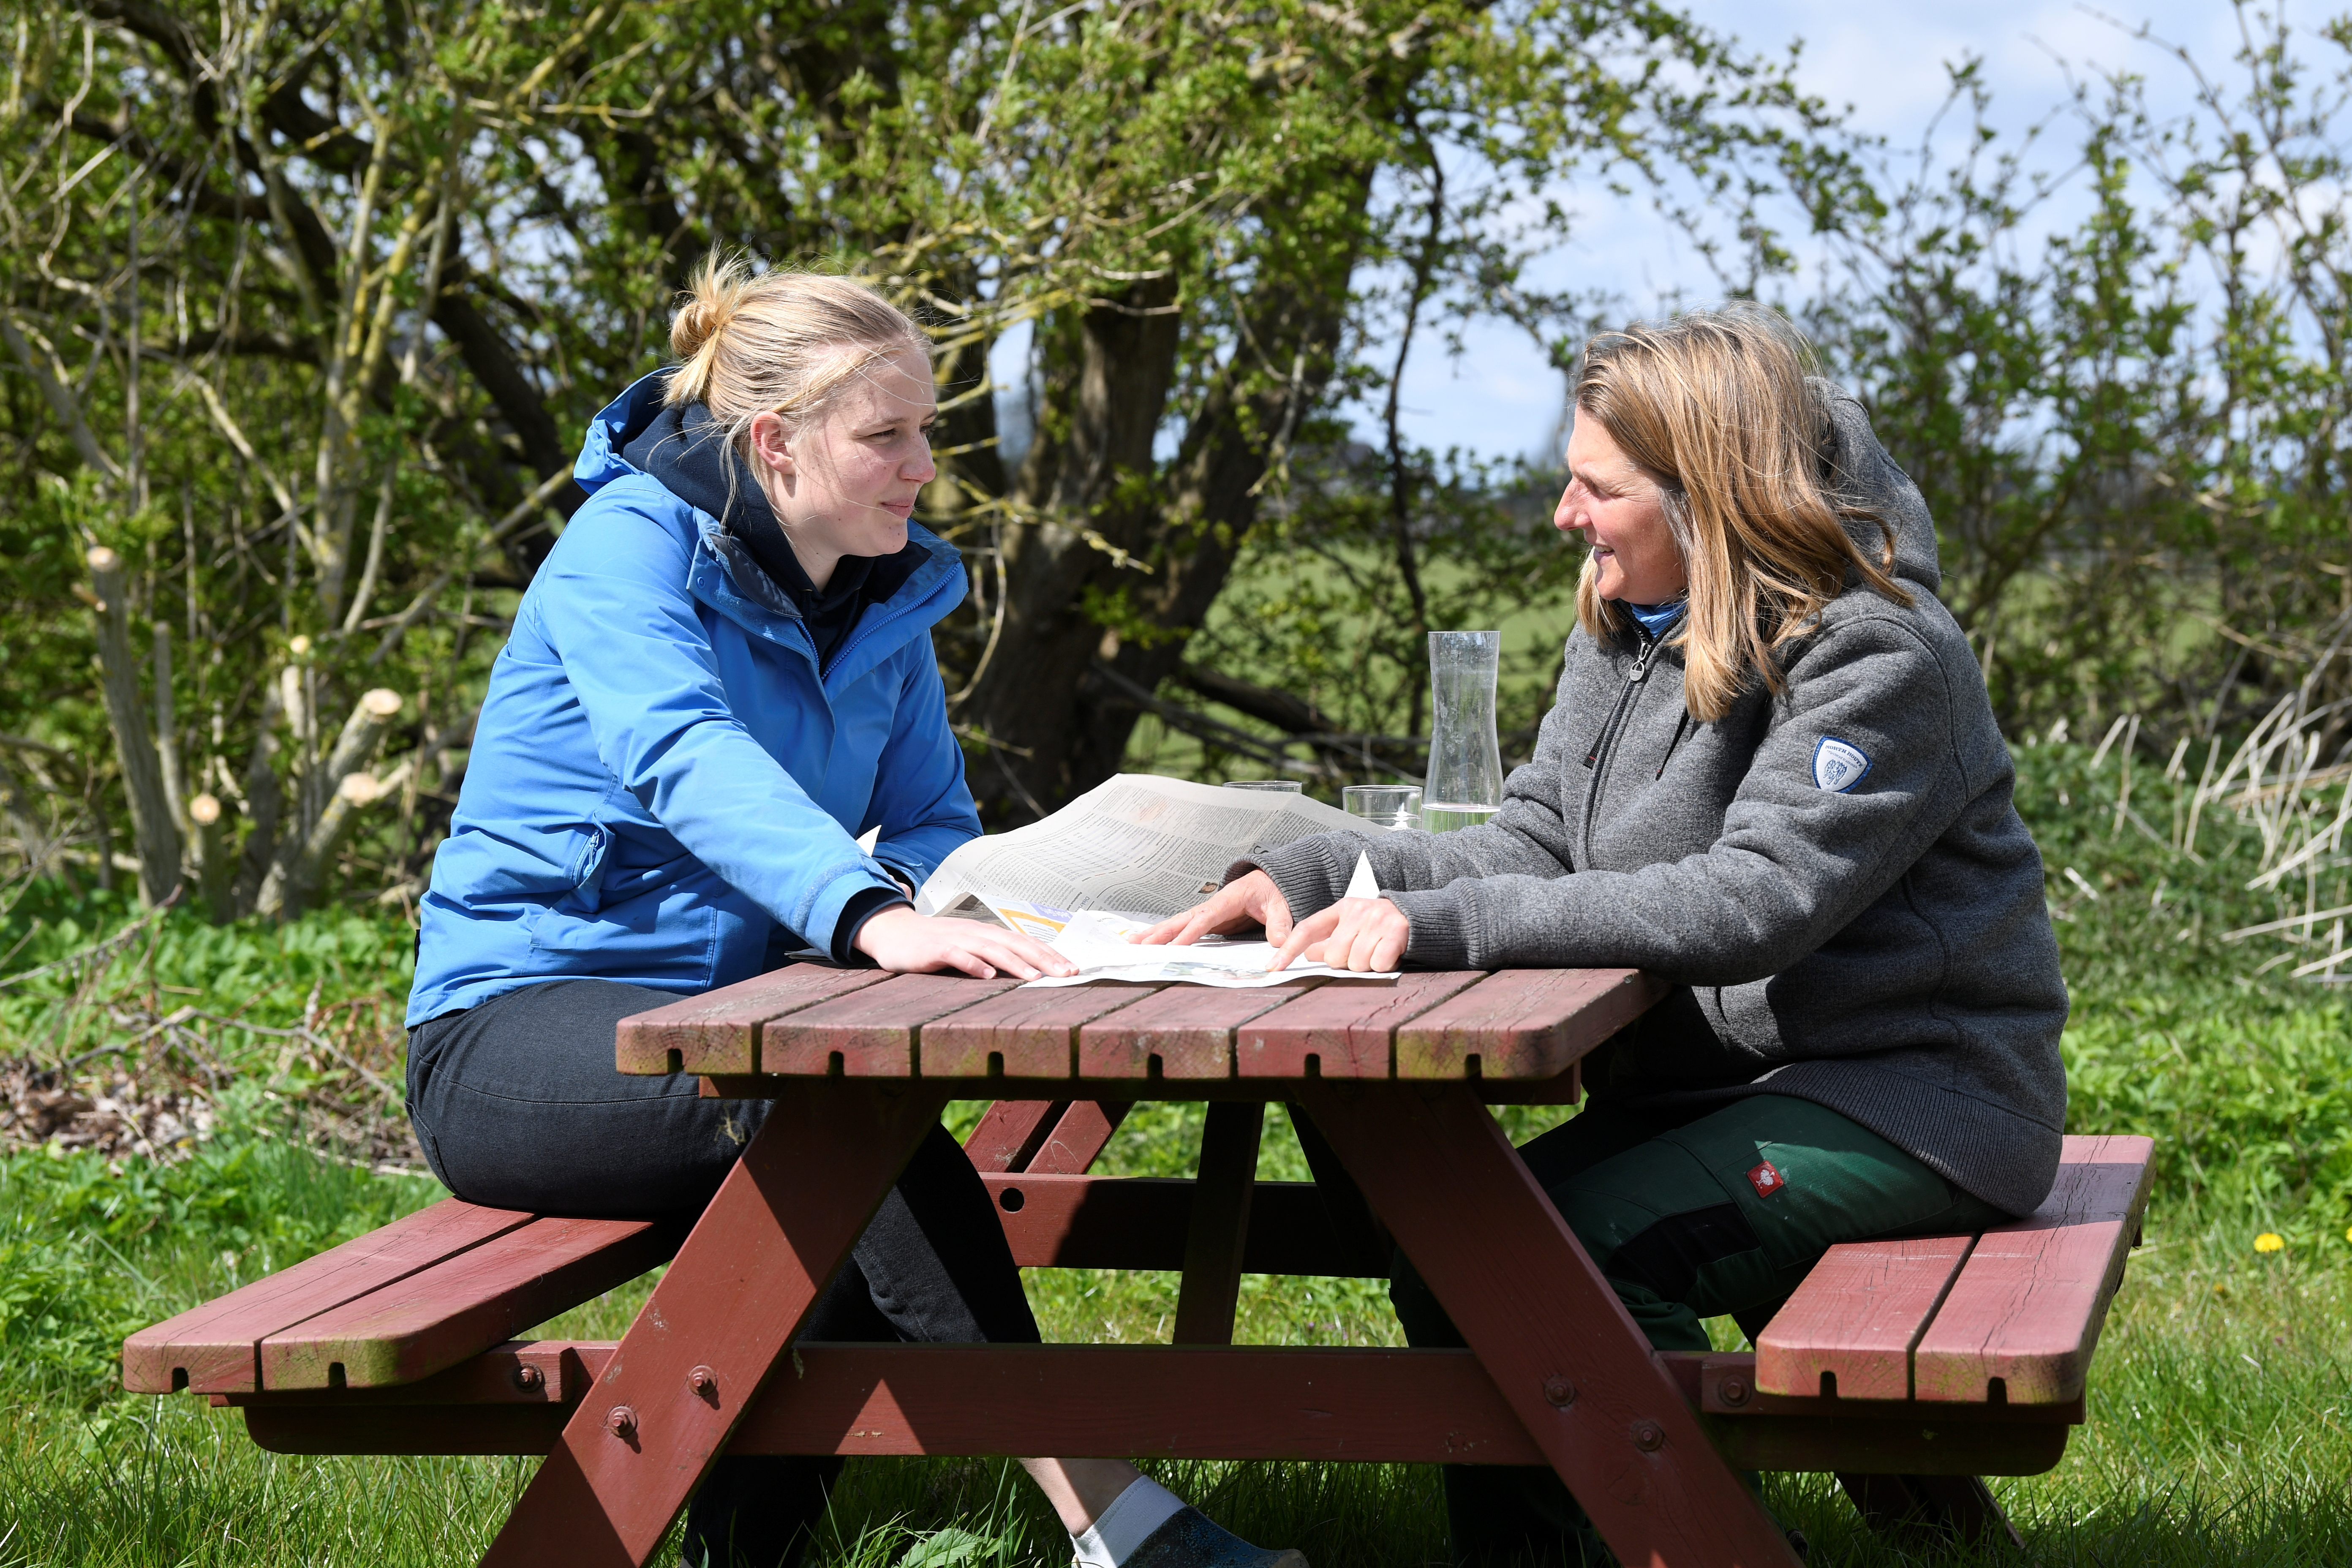 Sophie Backsen, 22, daughter of a farming family which forced Germany by court to tighten its climate law, talks with her mother Silke on the North Sea island of Pellworm, Germany May 3, 2021. Picture taken May 3, 2021. REUTERS/Fabian Bimmer